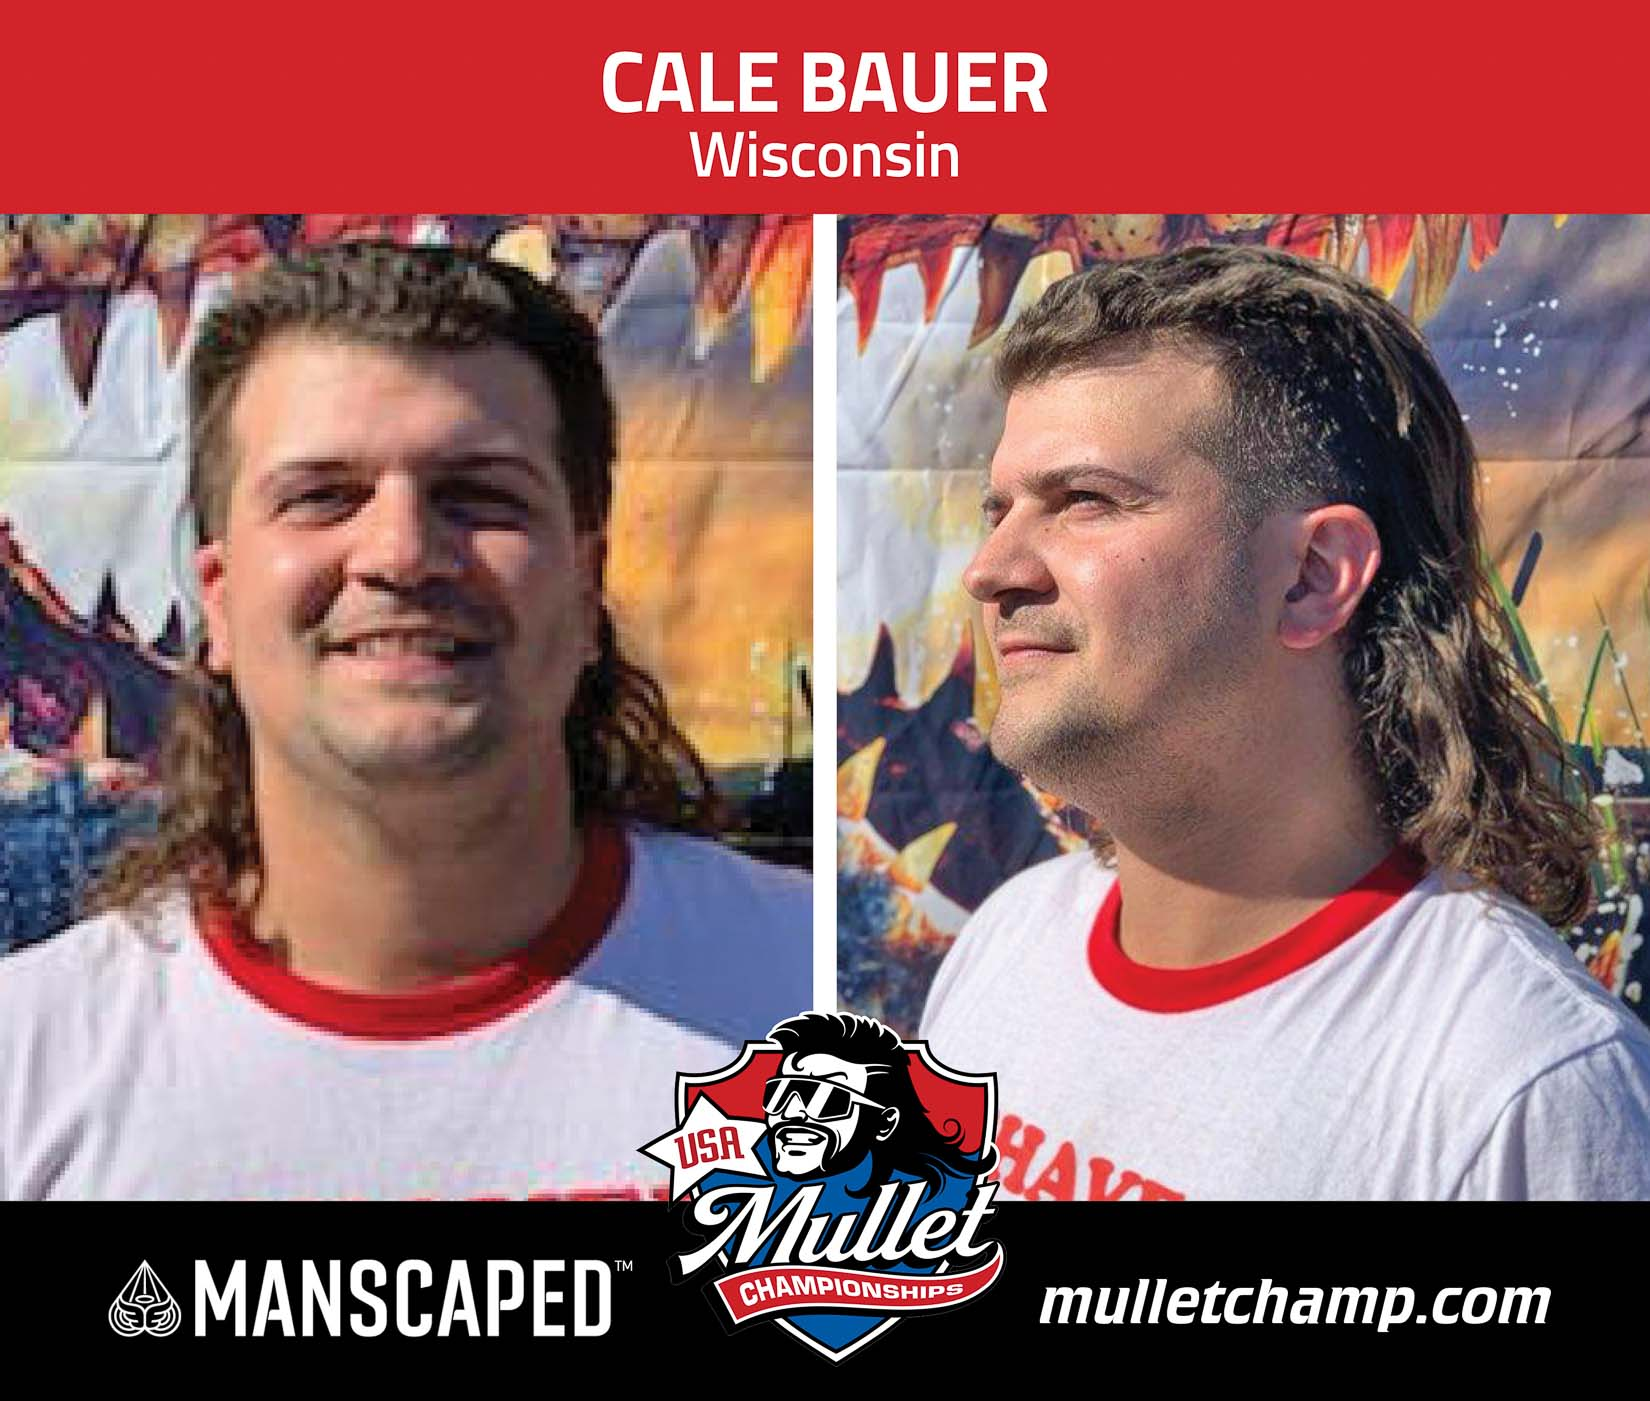 Mullet-Champ-USA-Mens-Open-Division-2021-Cale-Bauer